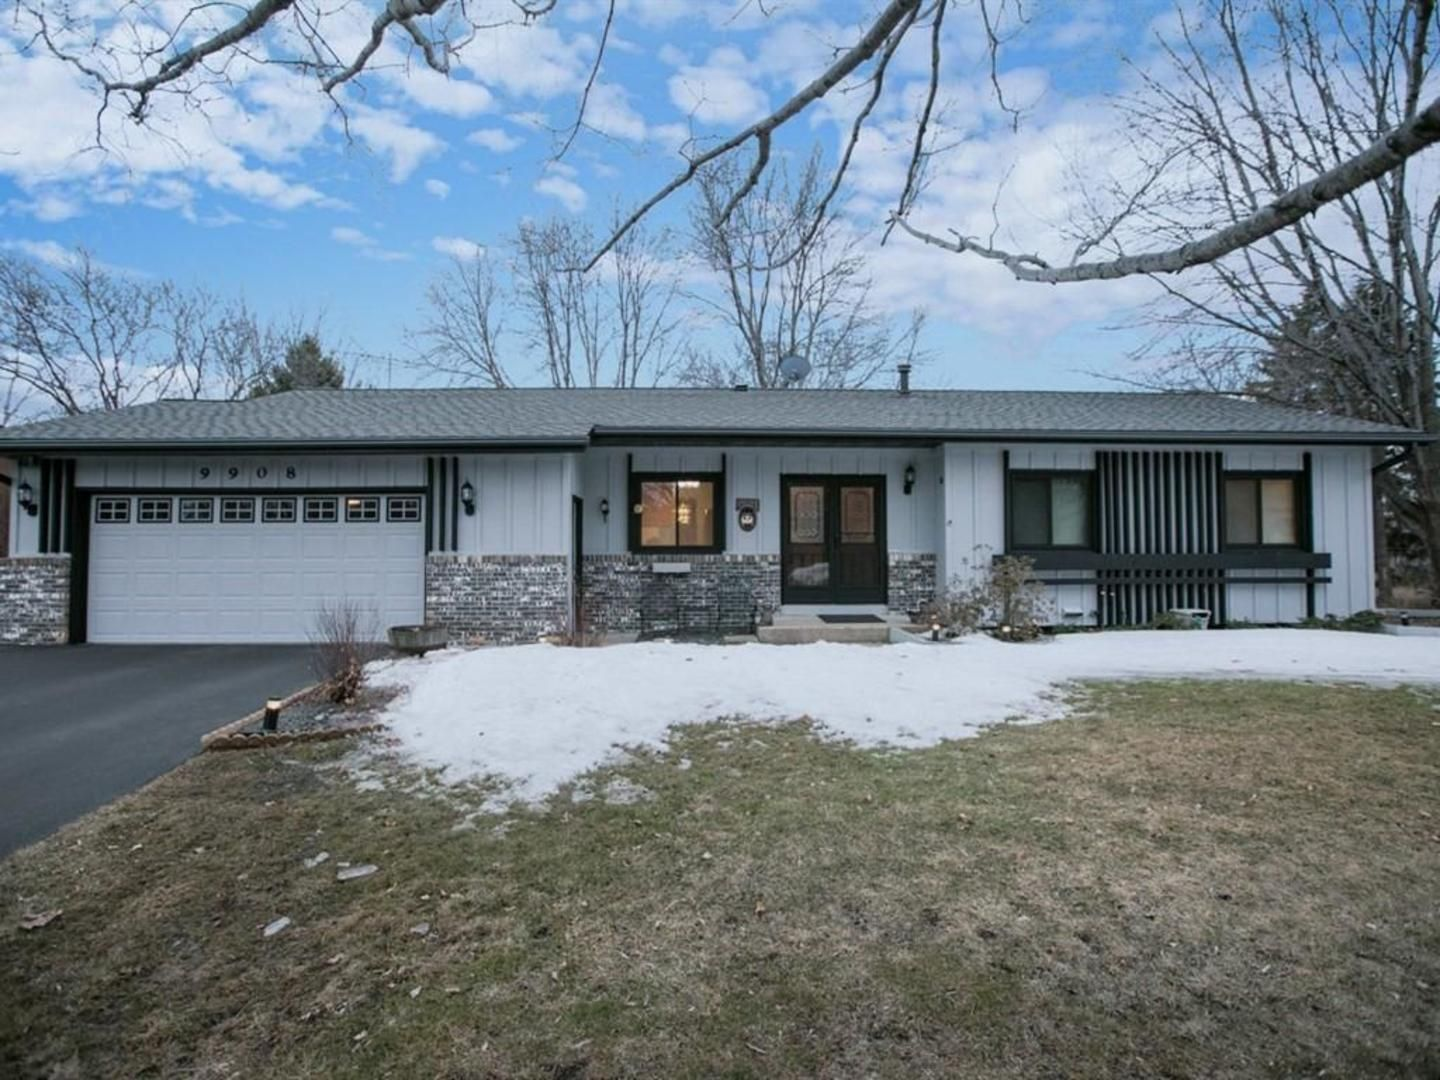 9908 Linden Dr, Eden Prairie, MN 55347 - Recently Sold | Trulia